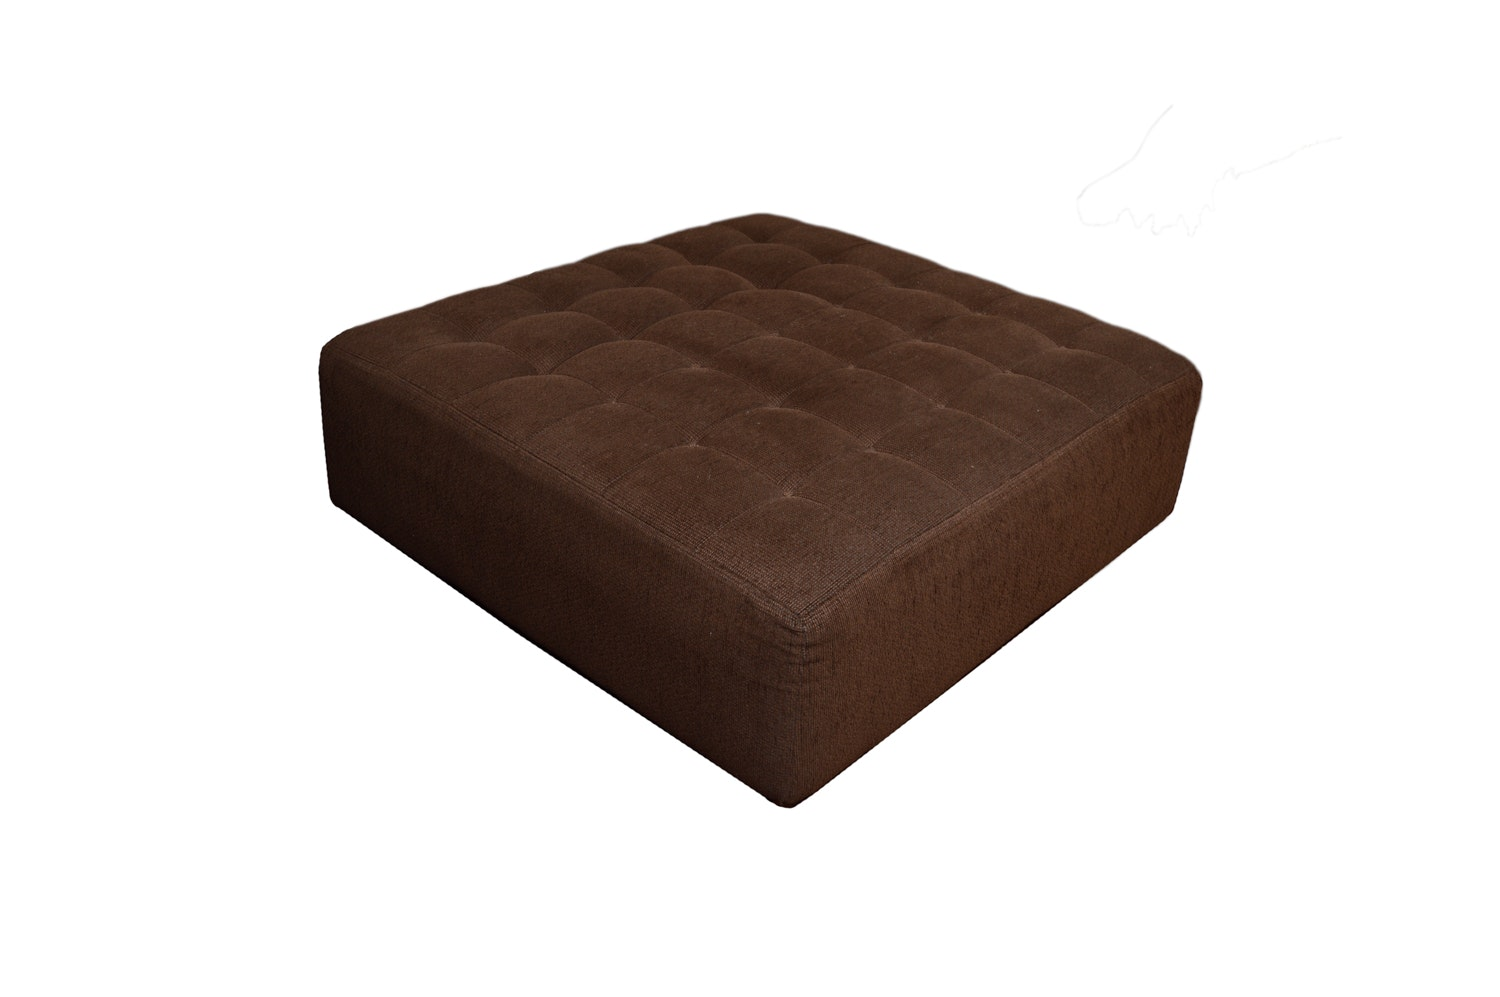 Chocolate Brown Upholstered Ottoman with Button Tufted Top